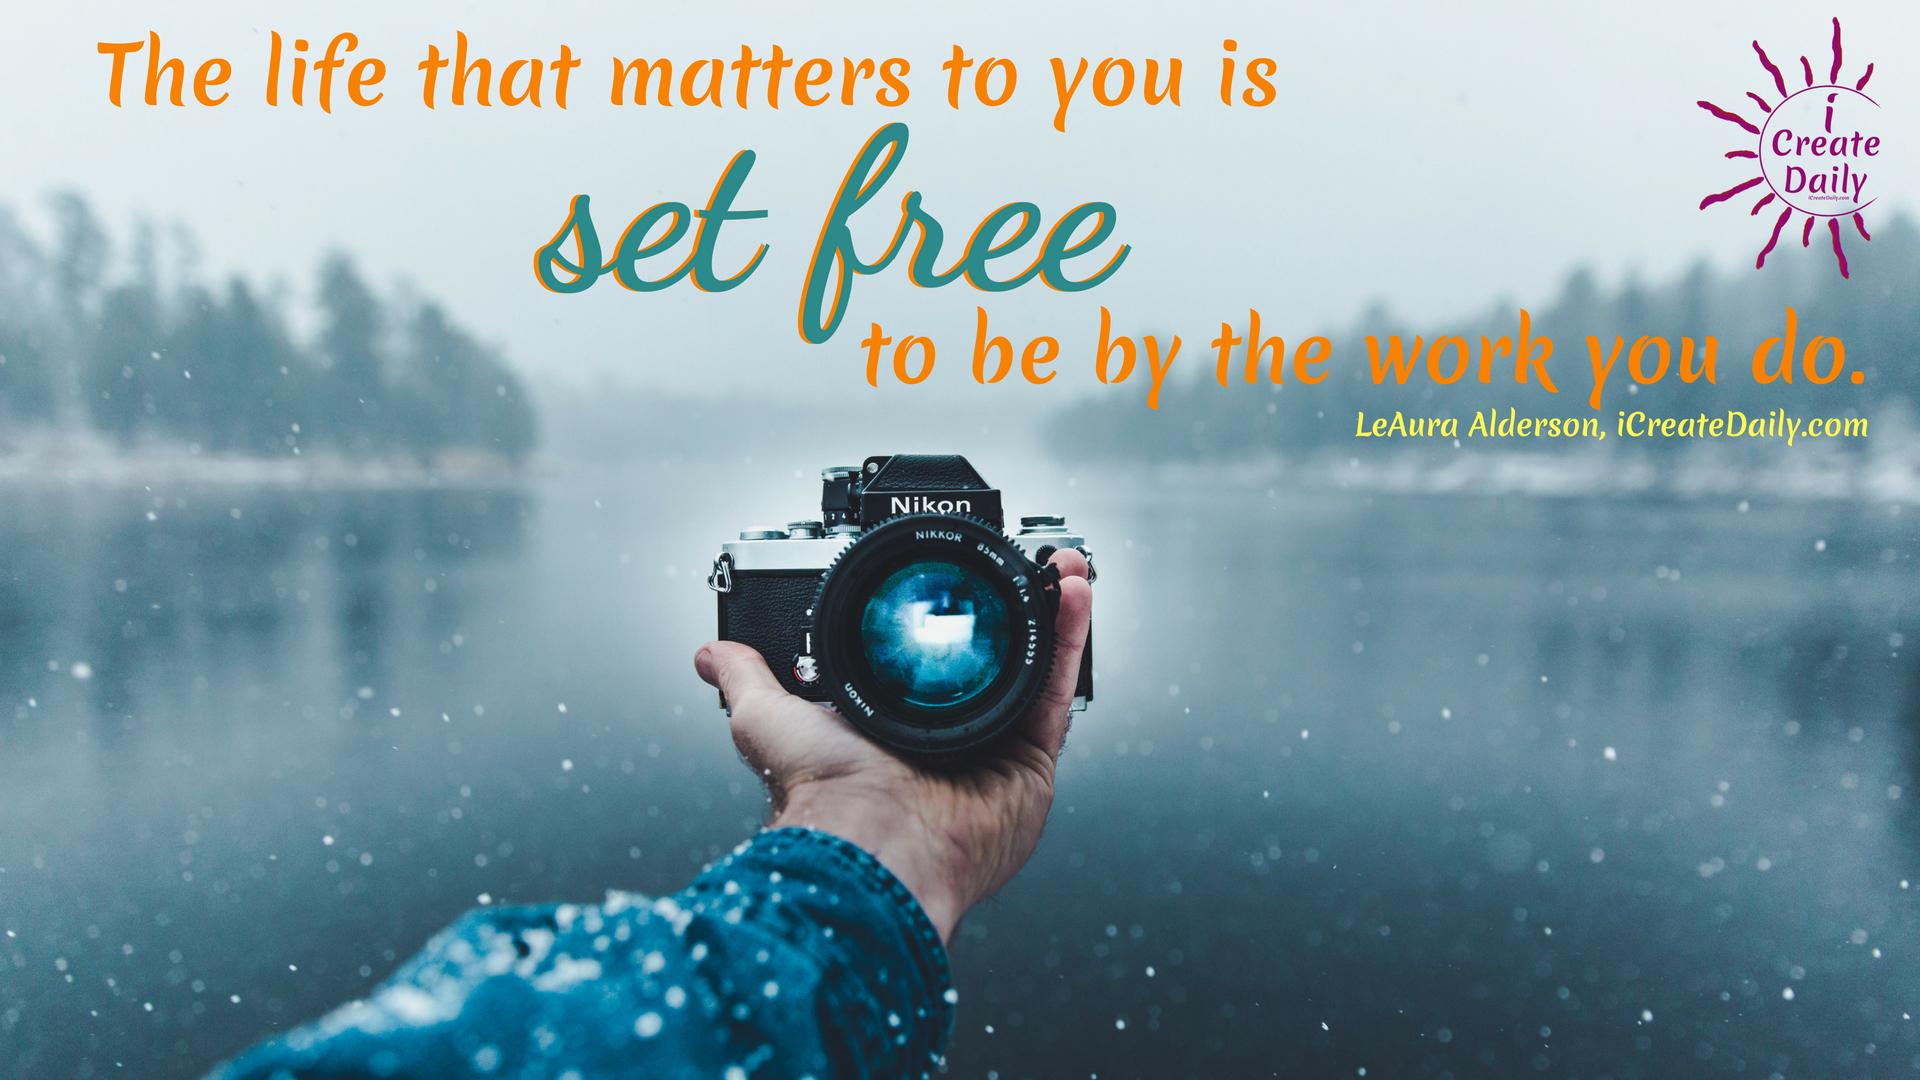 The life that matters to you is set free to be by the work you do even when you're tired. Even when there are temptations not to. even when you doubt. Even when you fear. #life #quotes #success #creative